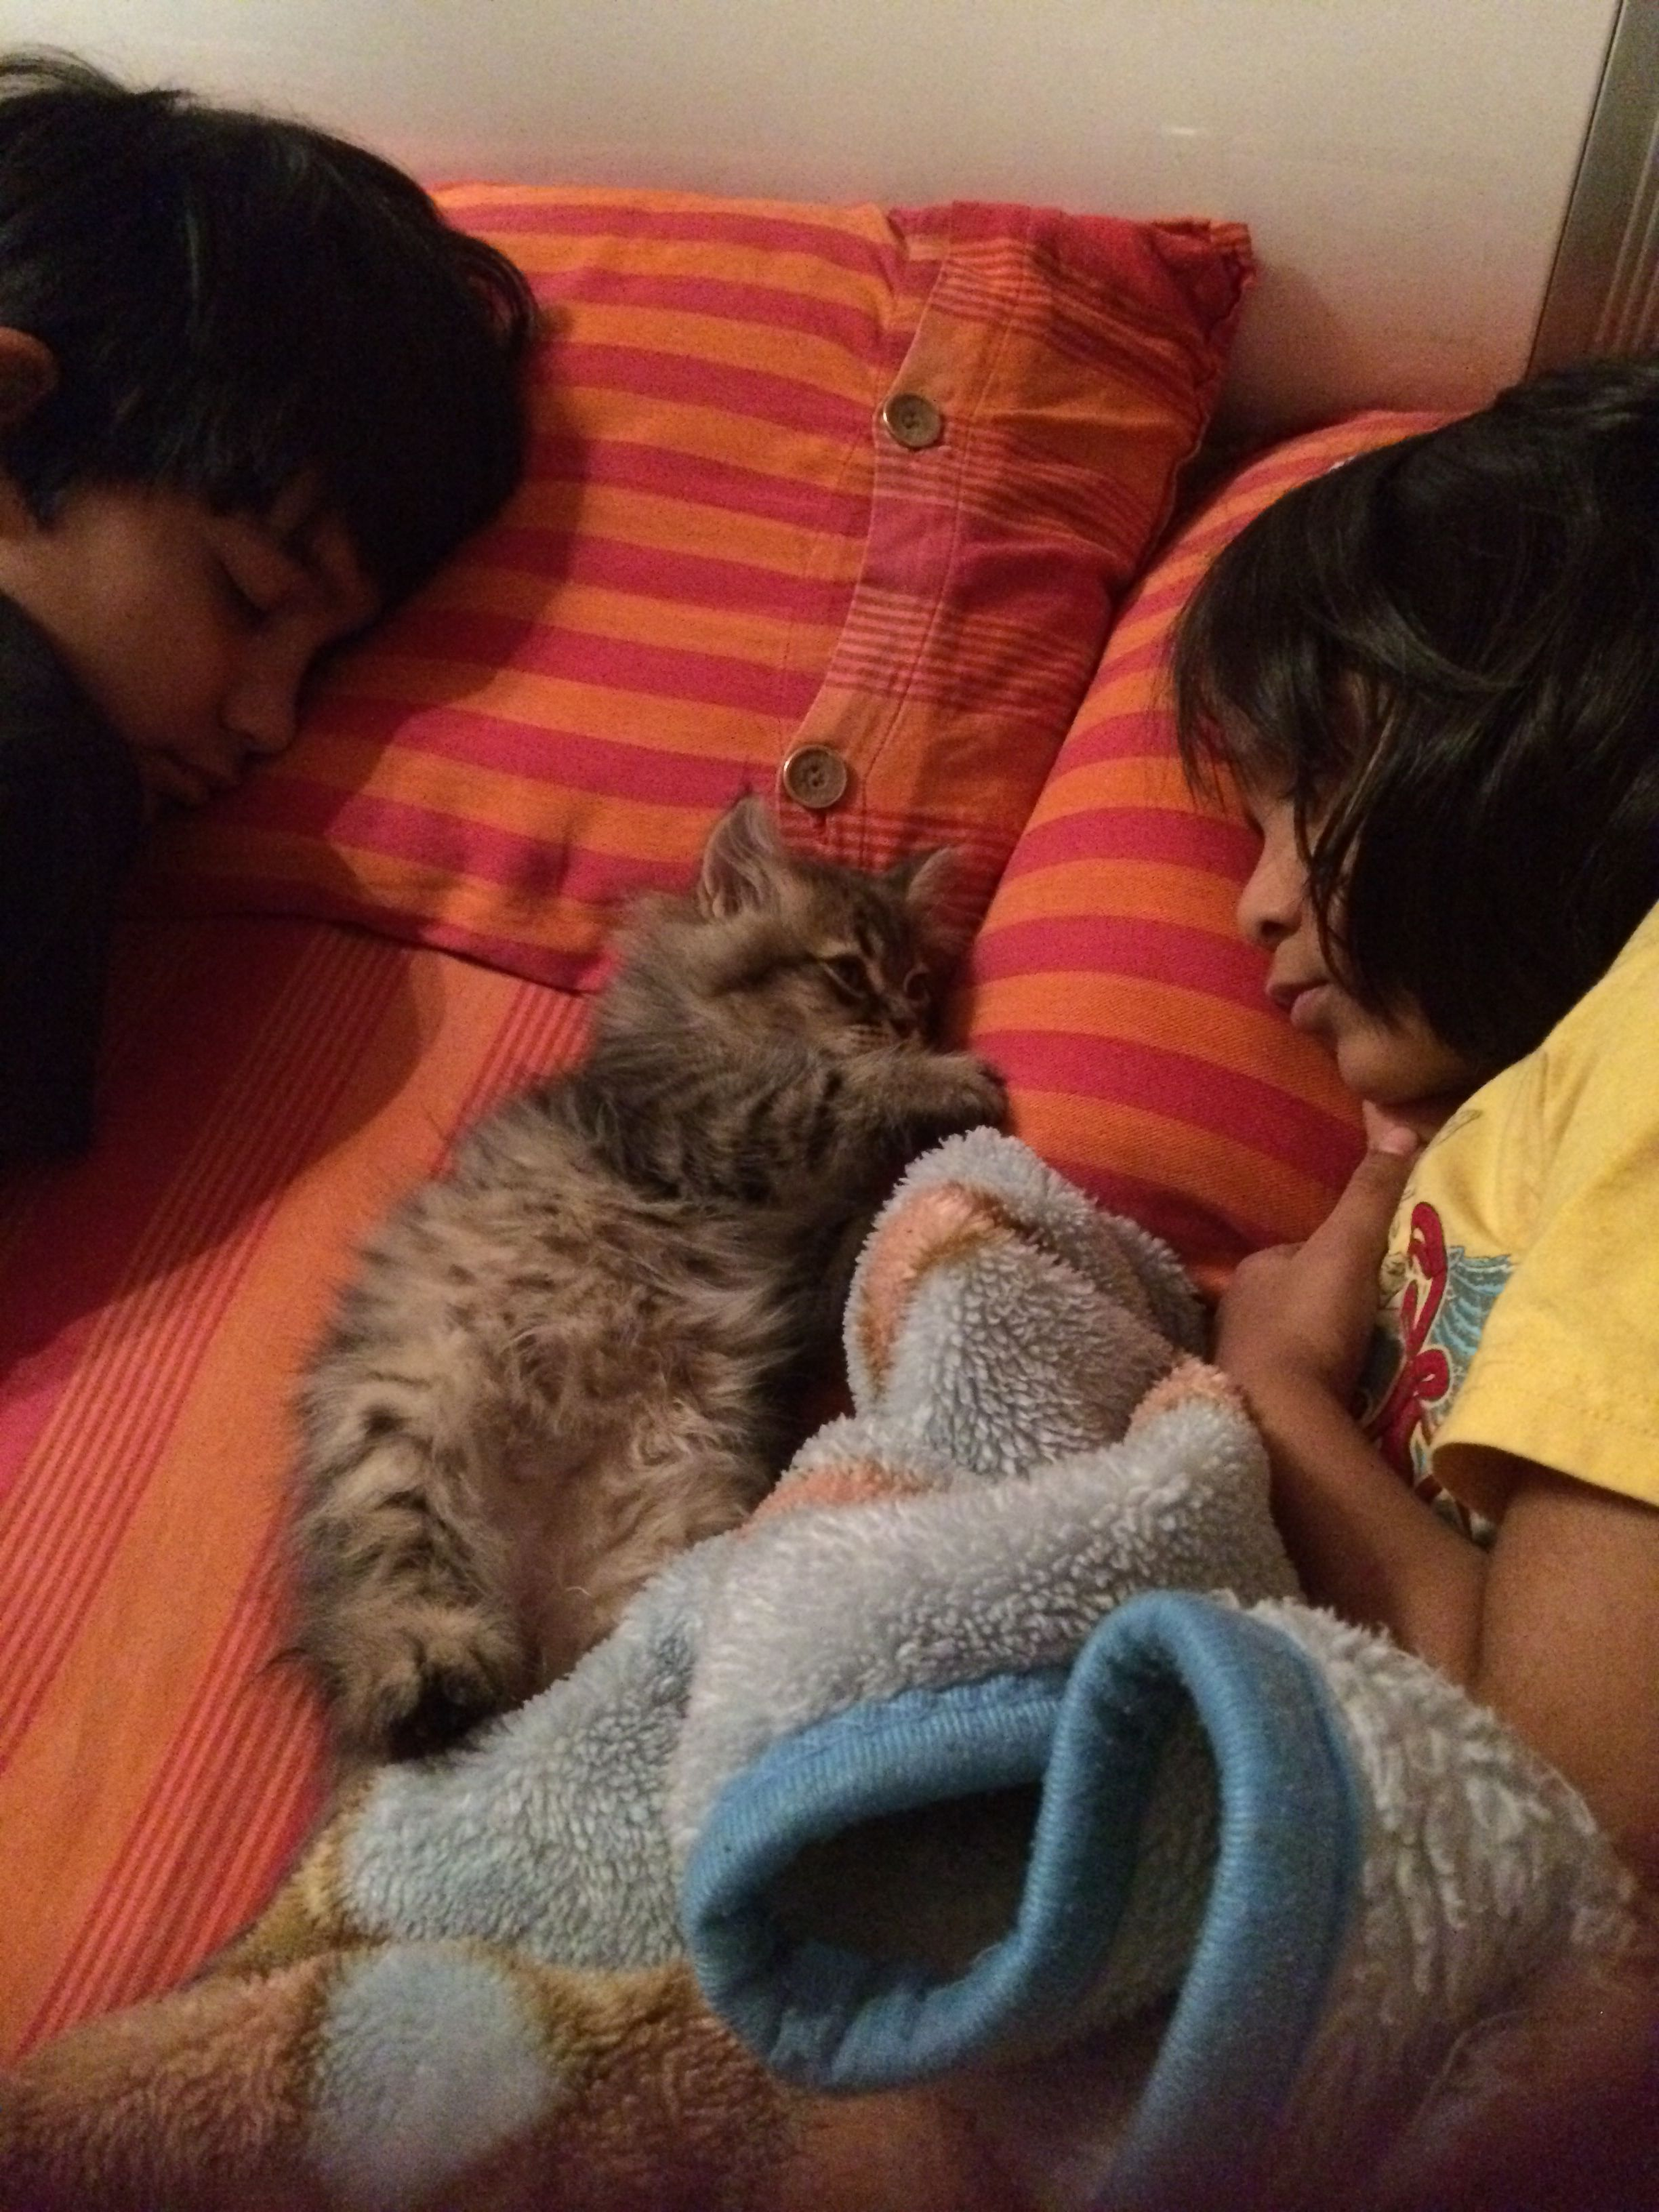 My babiessleeping....just bought Zippo my kitten home one day ago n he was sleepin with my kids like this❤️❤️❤️